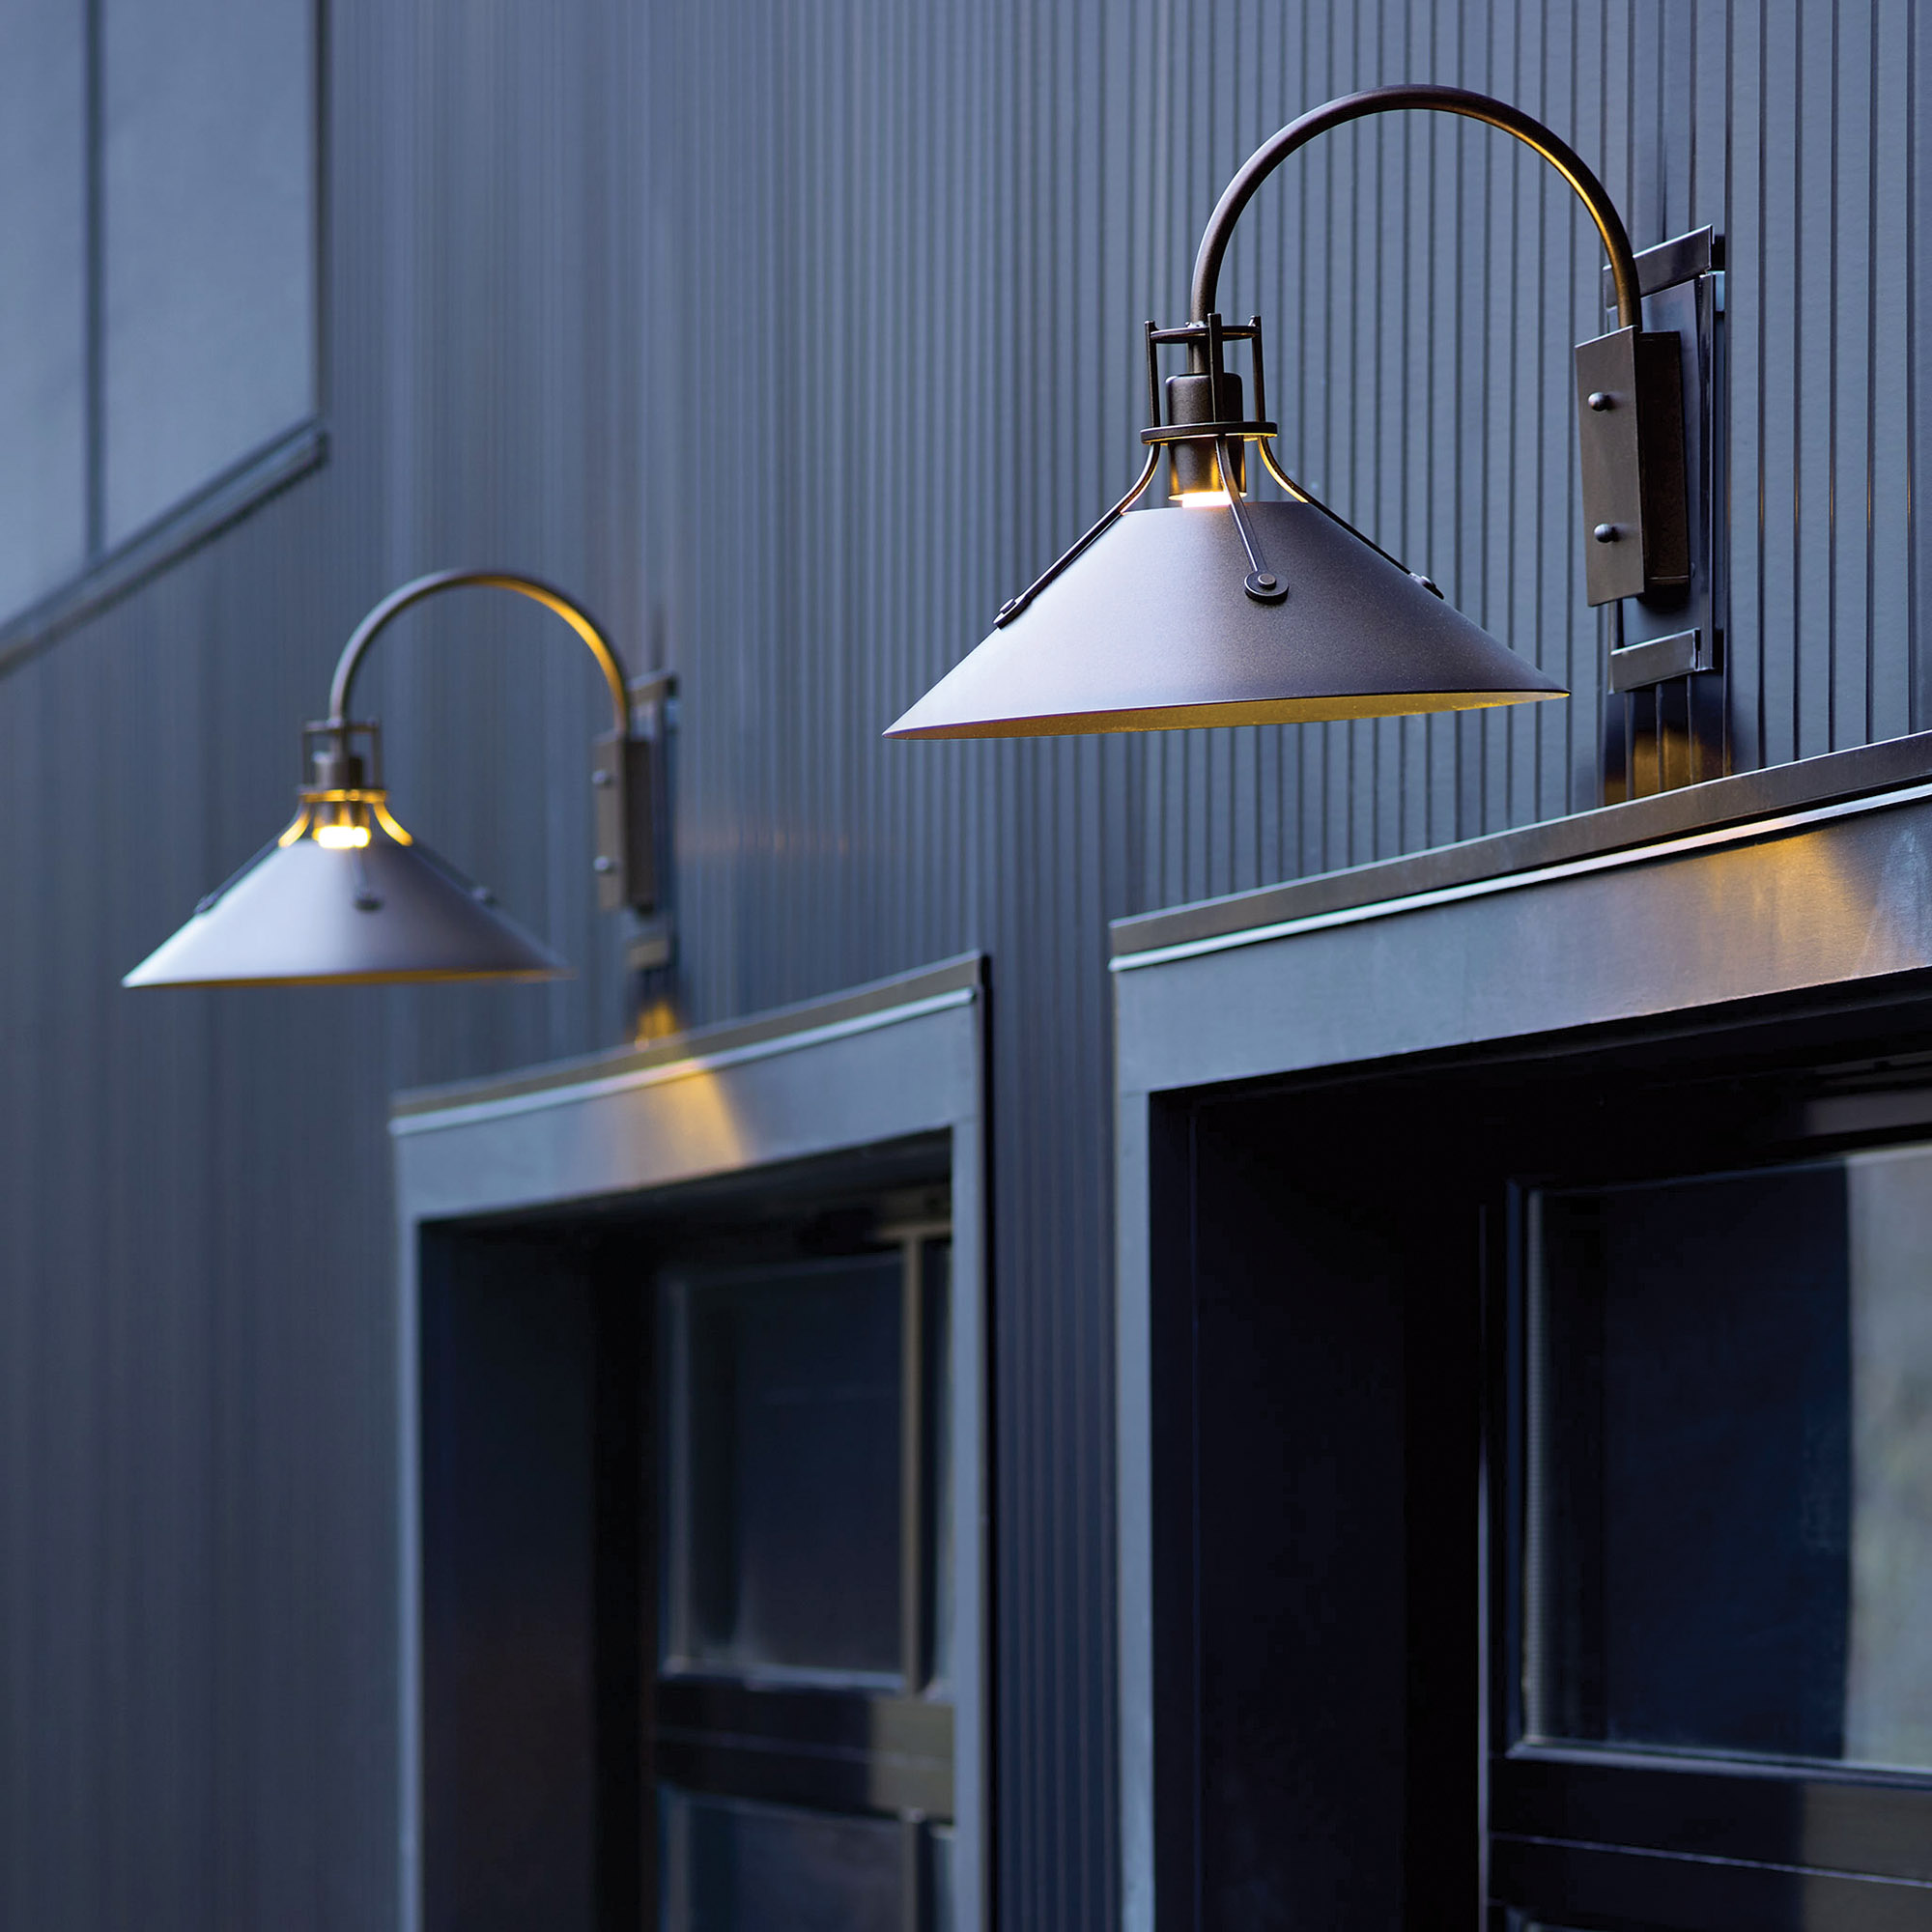 Barn-style lighting fixtures from Hubbardton Forge.